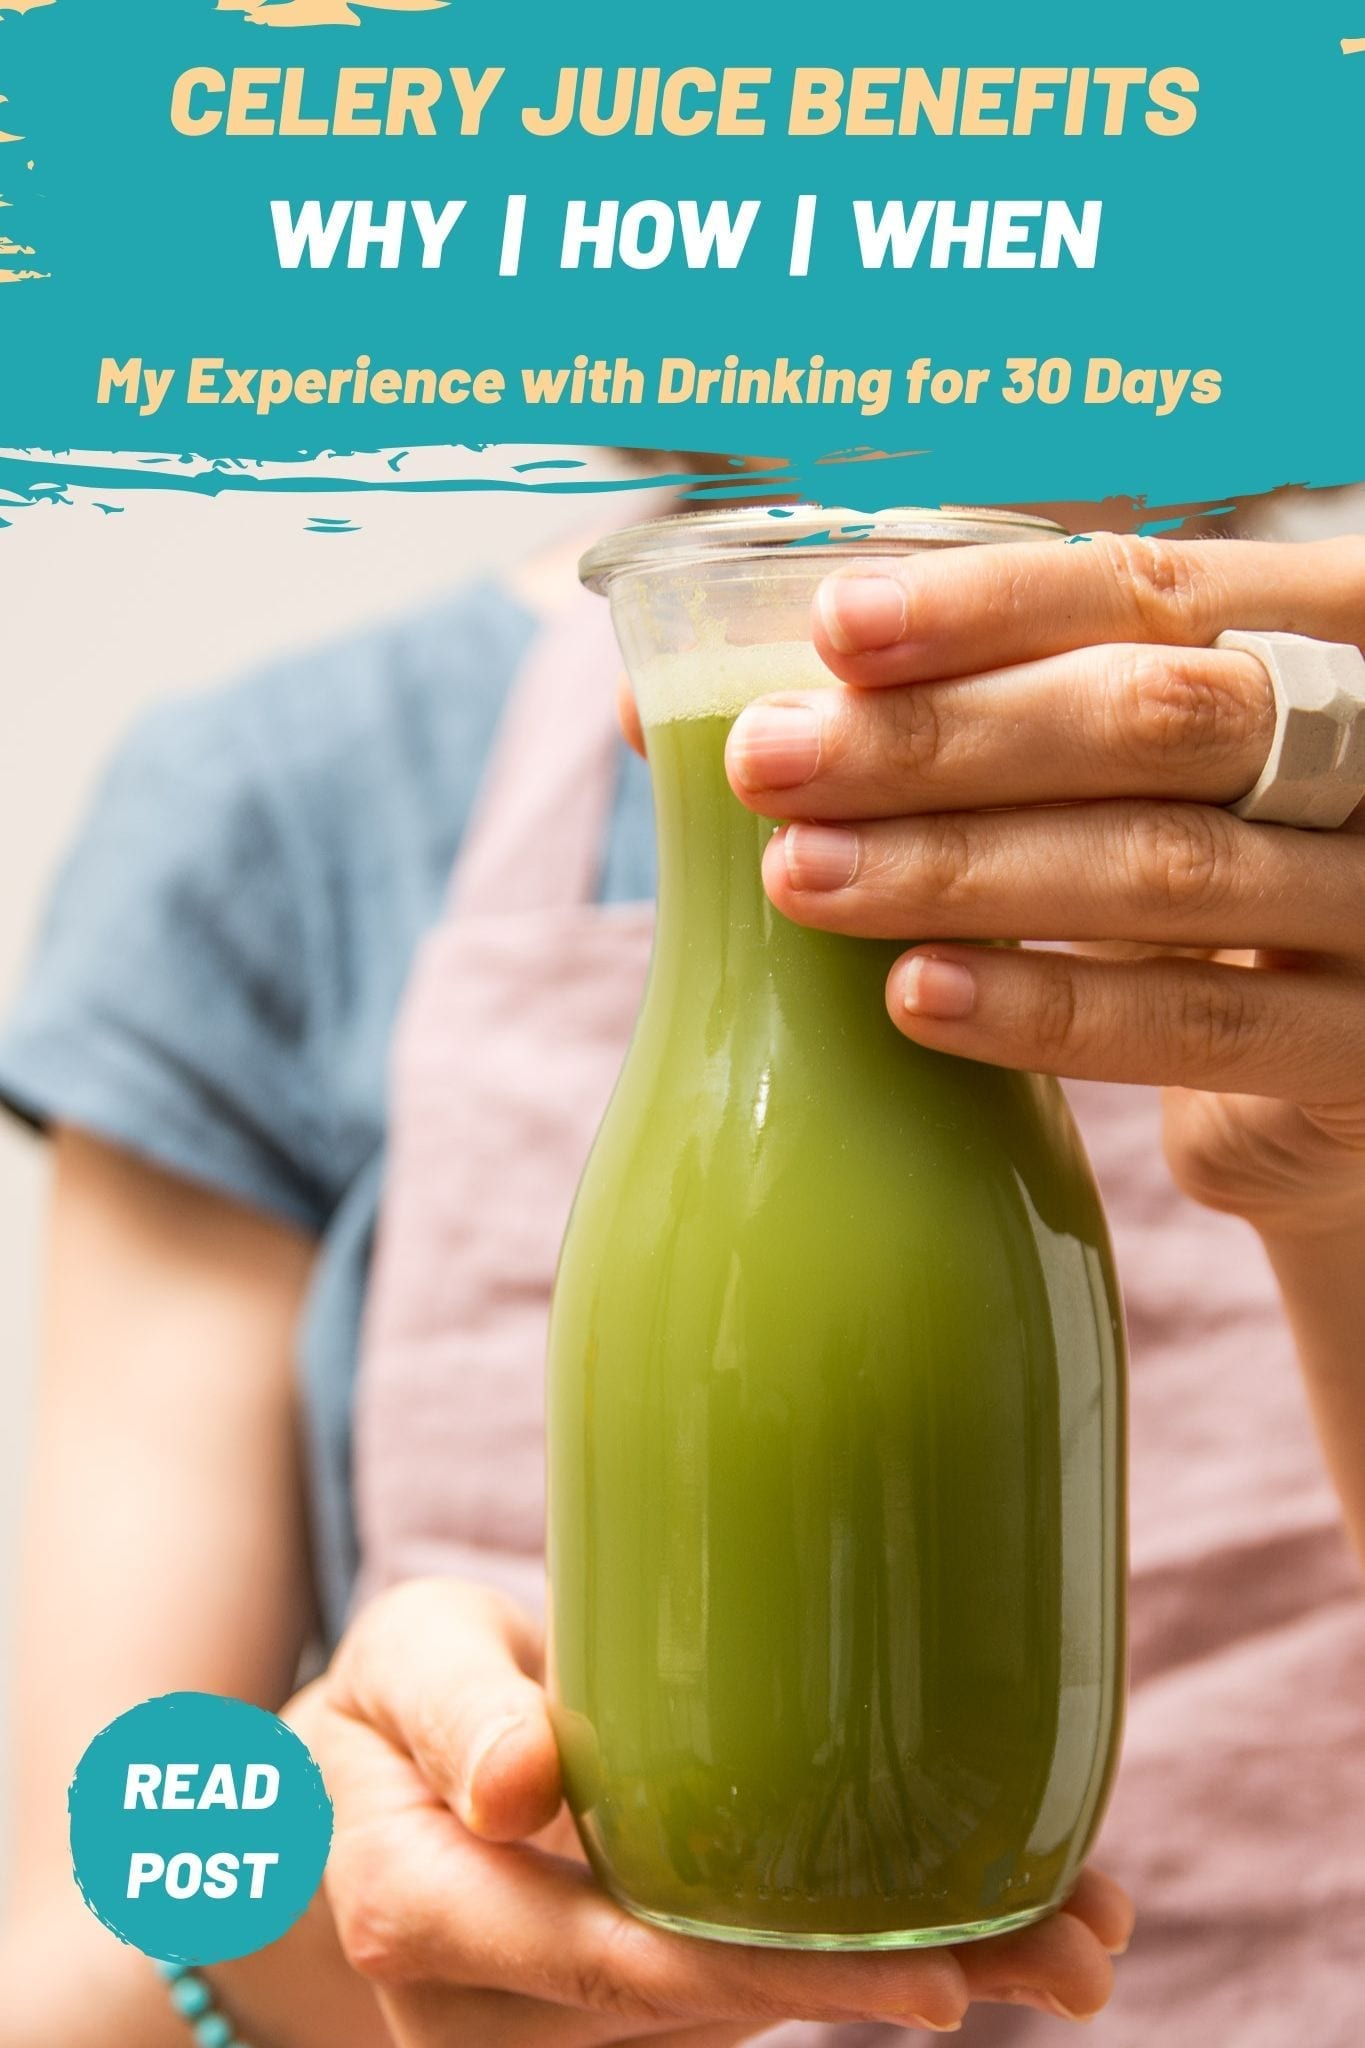 Celery juice benefits, my experience after 30 days and the correct way to drink it.